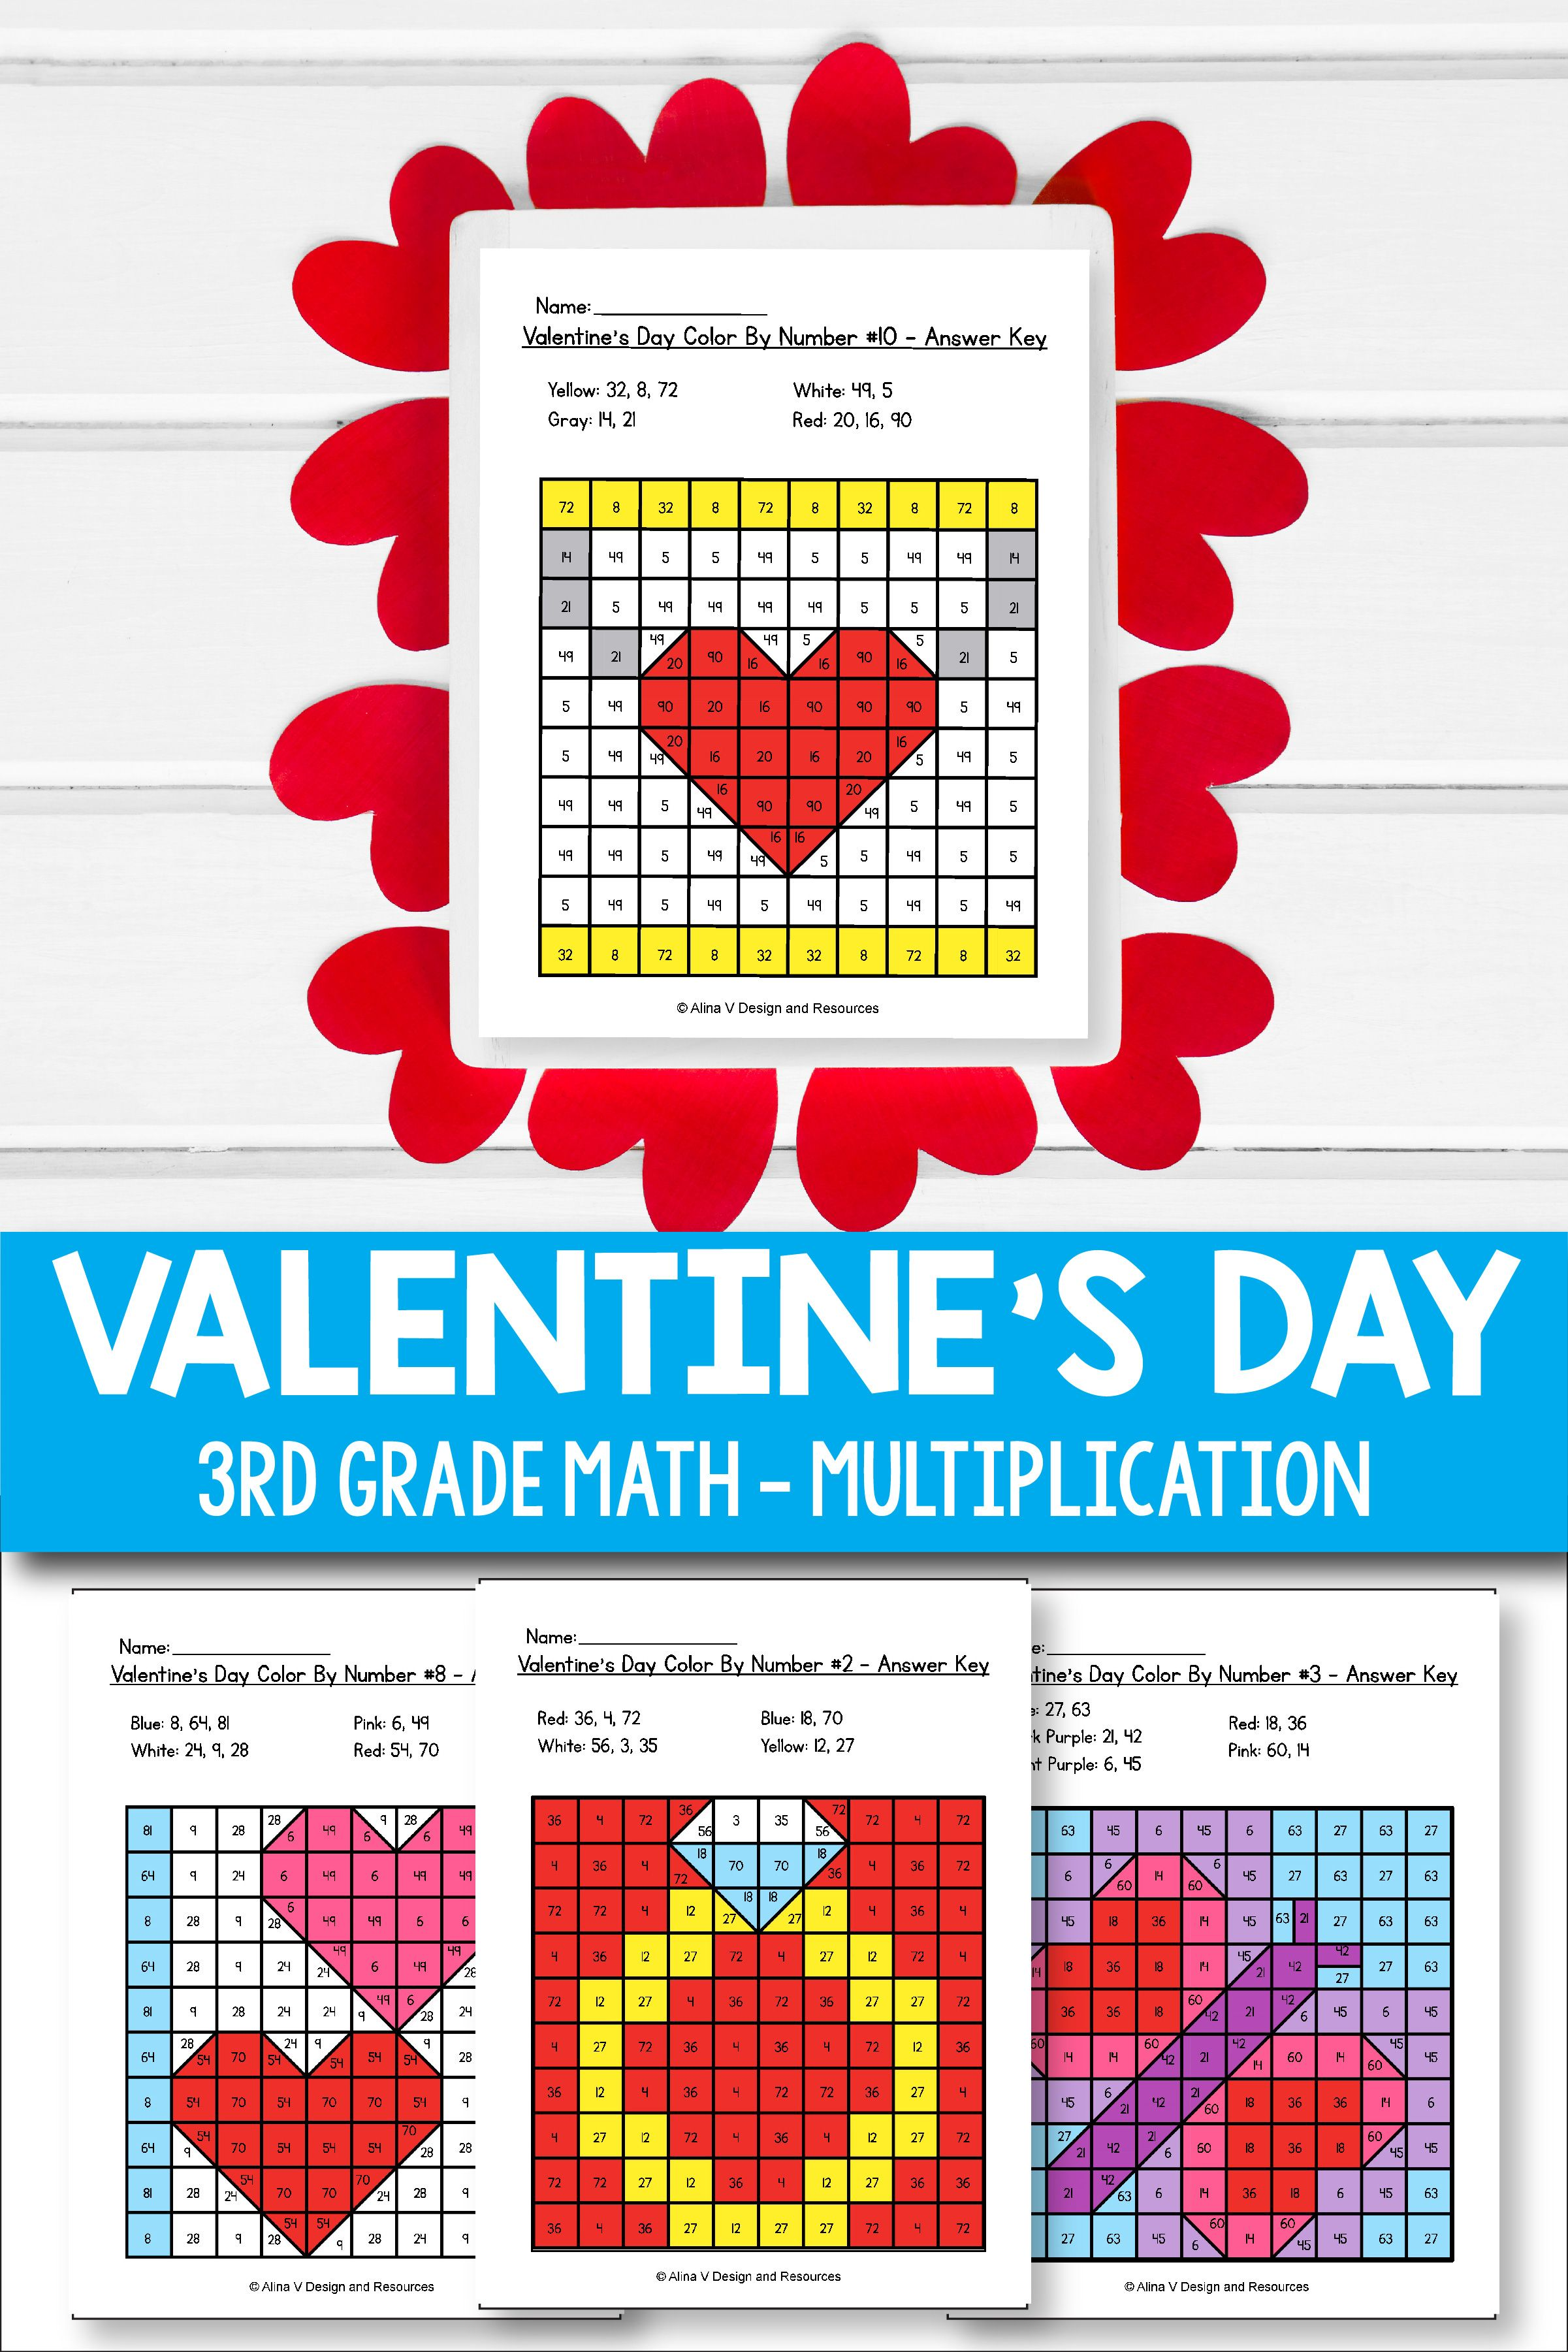 medium resolution of Valentine's Day Multiplication Math Worksheets for 3rd grade kids is fun  with these hundreds chart printabl…   Fun printables